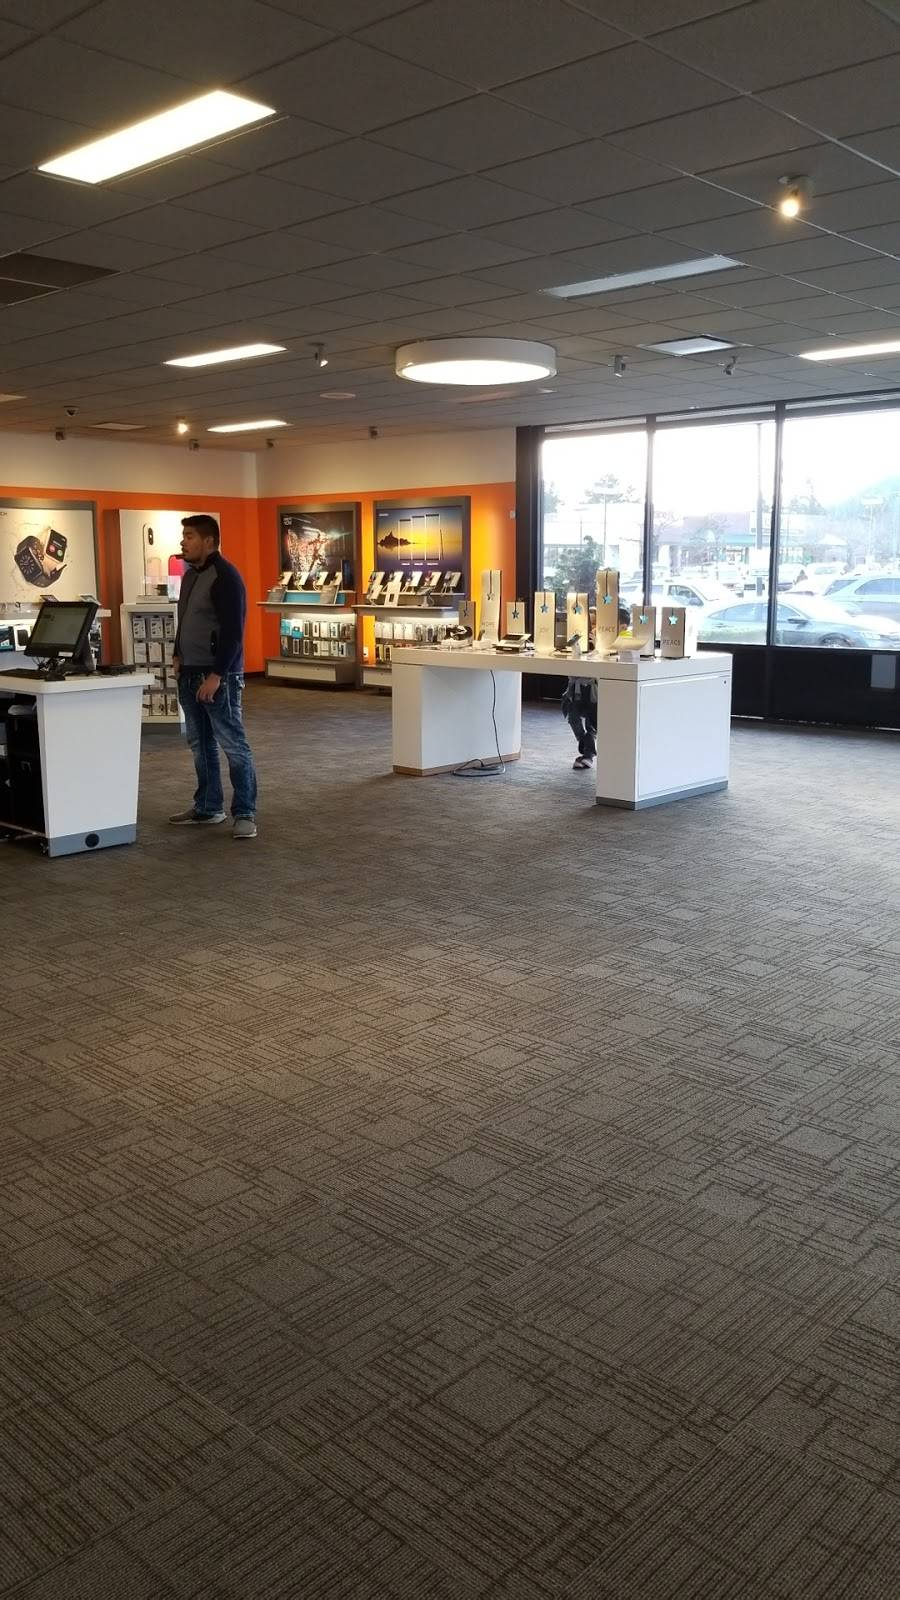 AT&T Store - store  | Photo 7 of 7 | Address: 12154 SE Division St, Portland, OR 97266, USA | Phone: (503) 477-4971